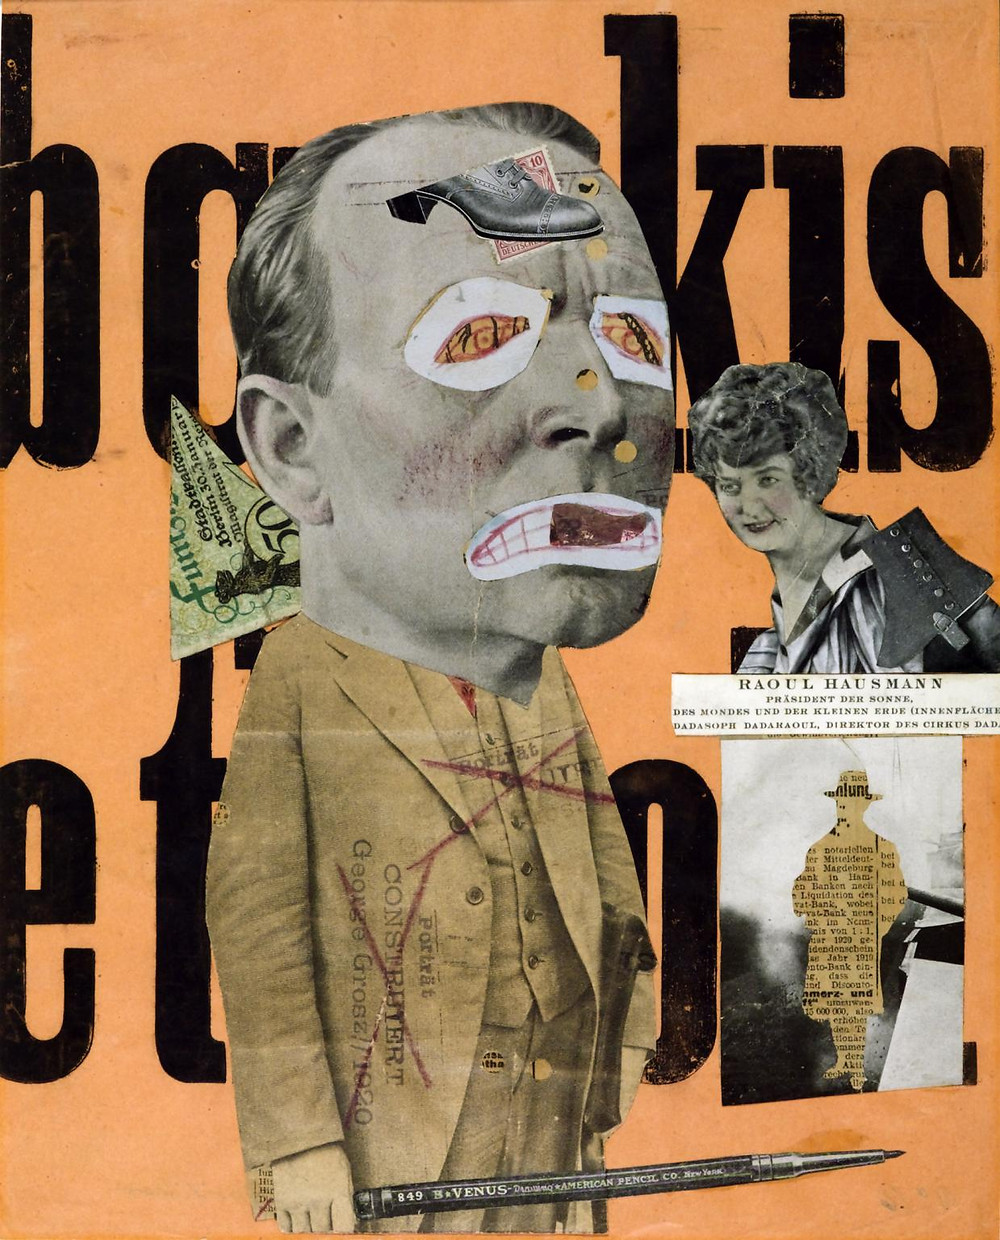 A collage of newspaper clippings on an orange background, featuring a man with his eyes and mouth clipped out